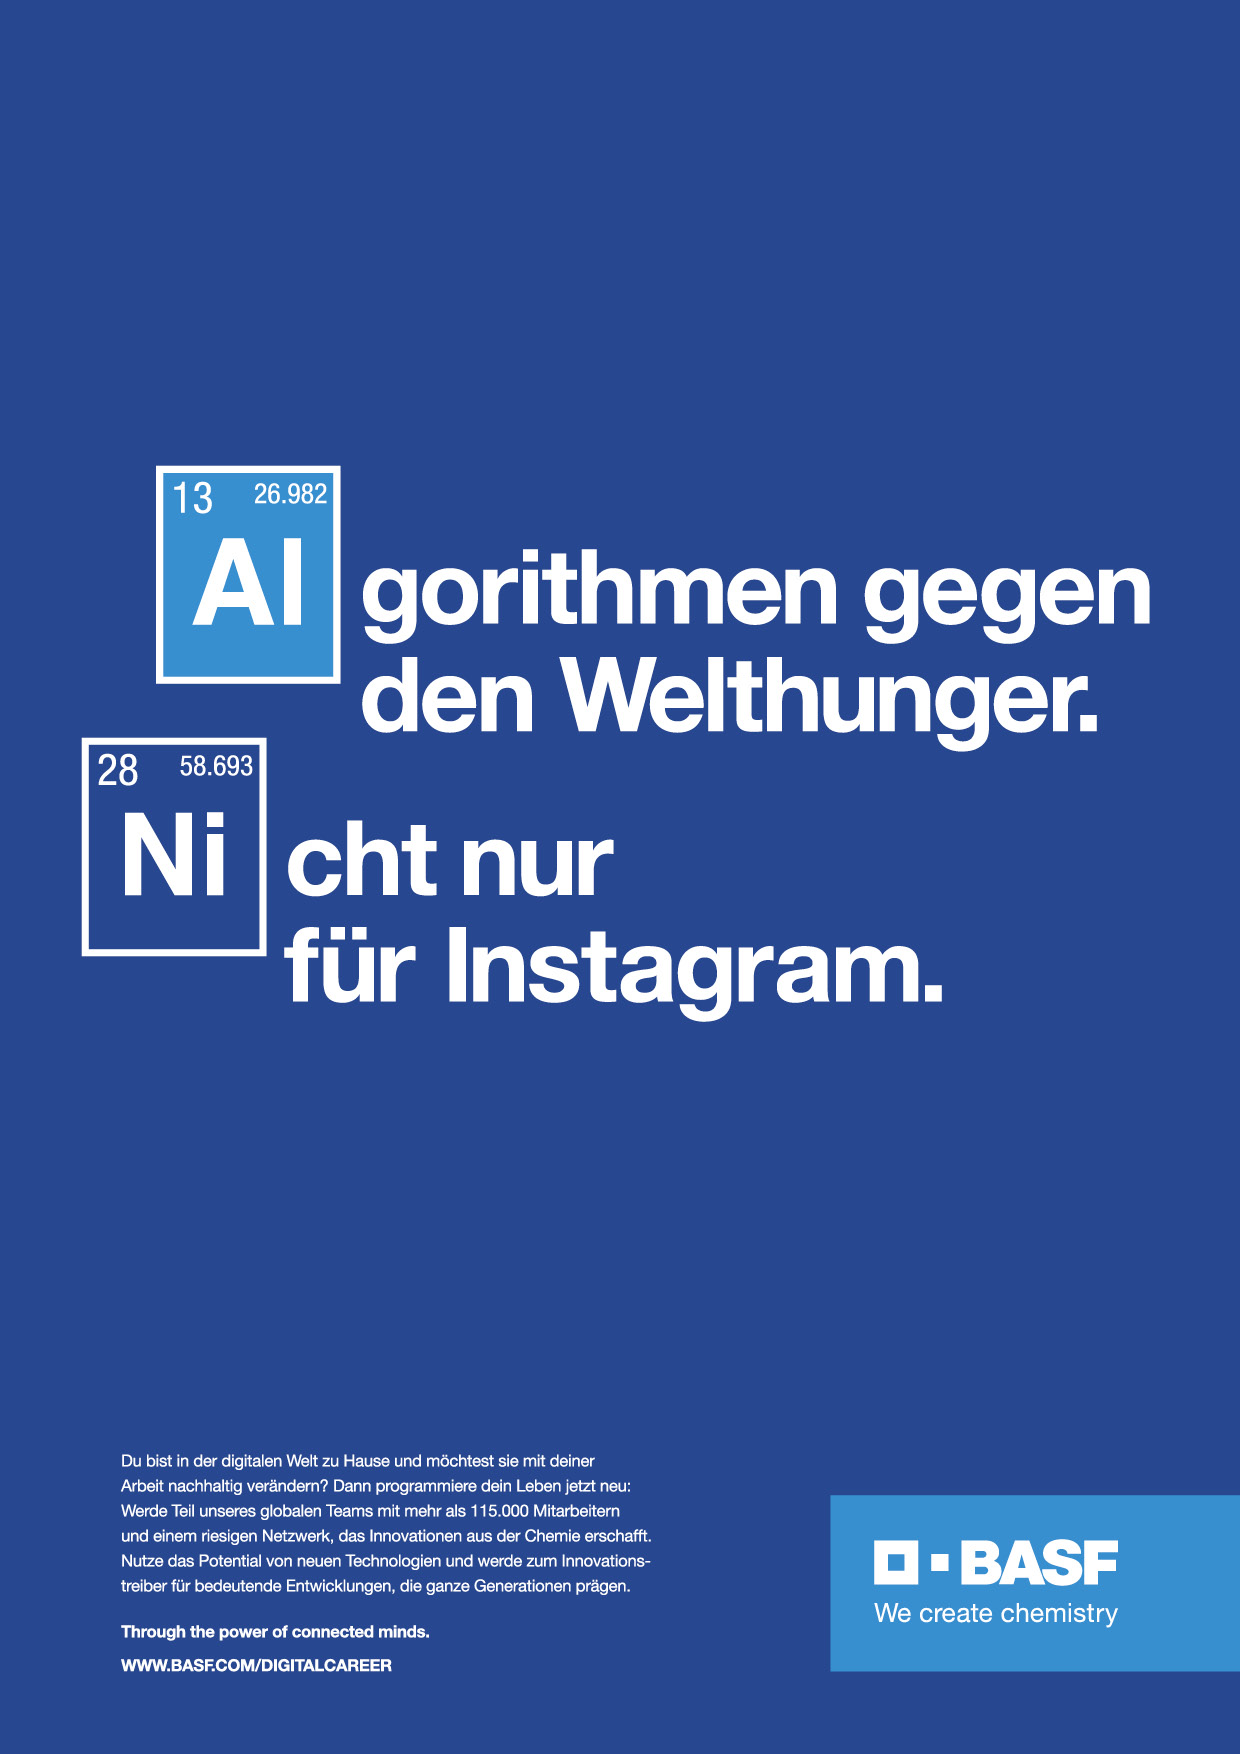 190205_BASF_210x297_Recruitment_Campaign_GER6.jpg